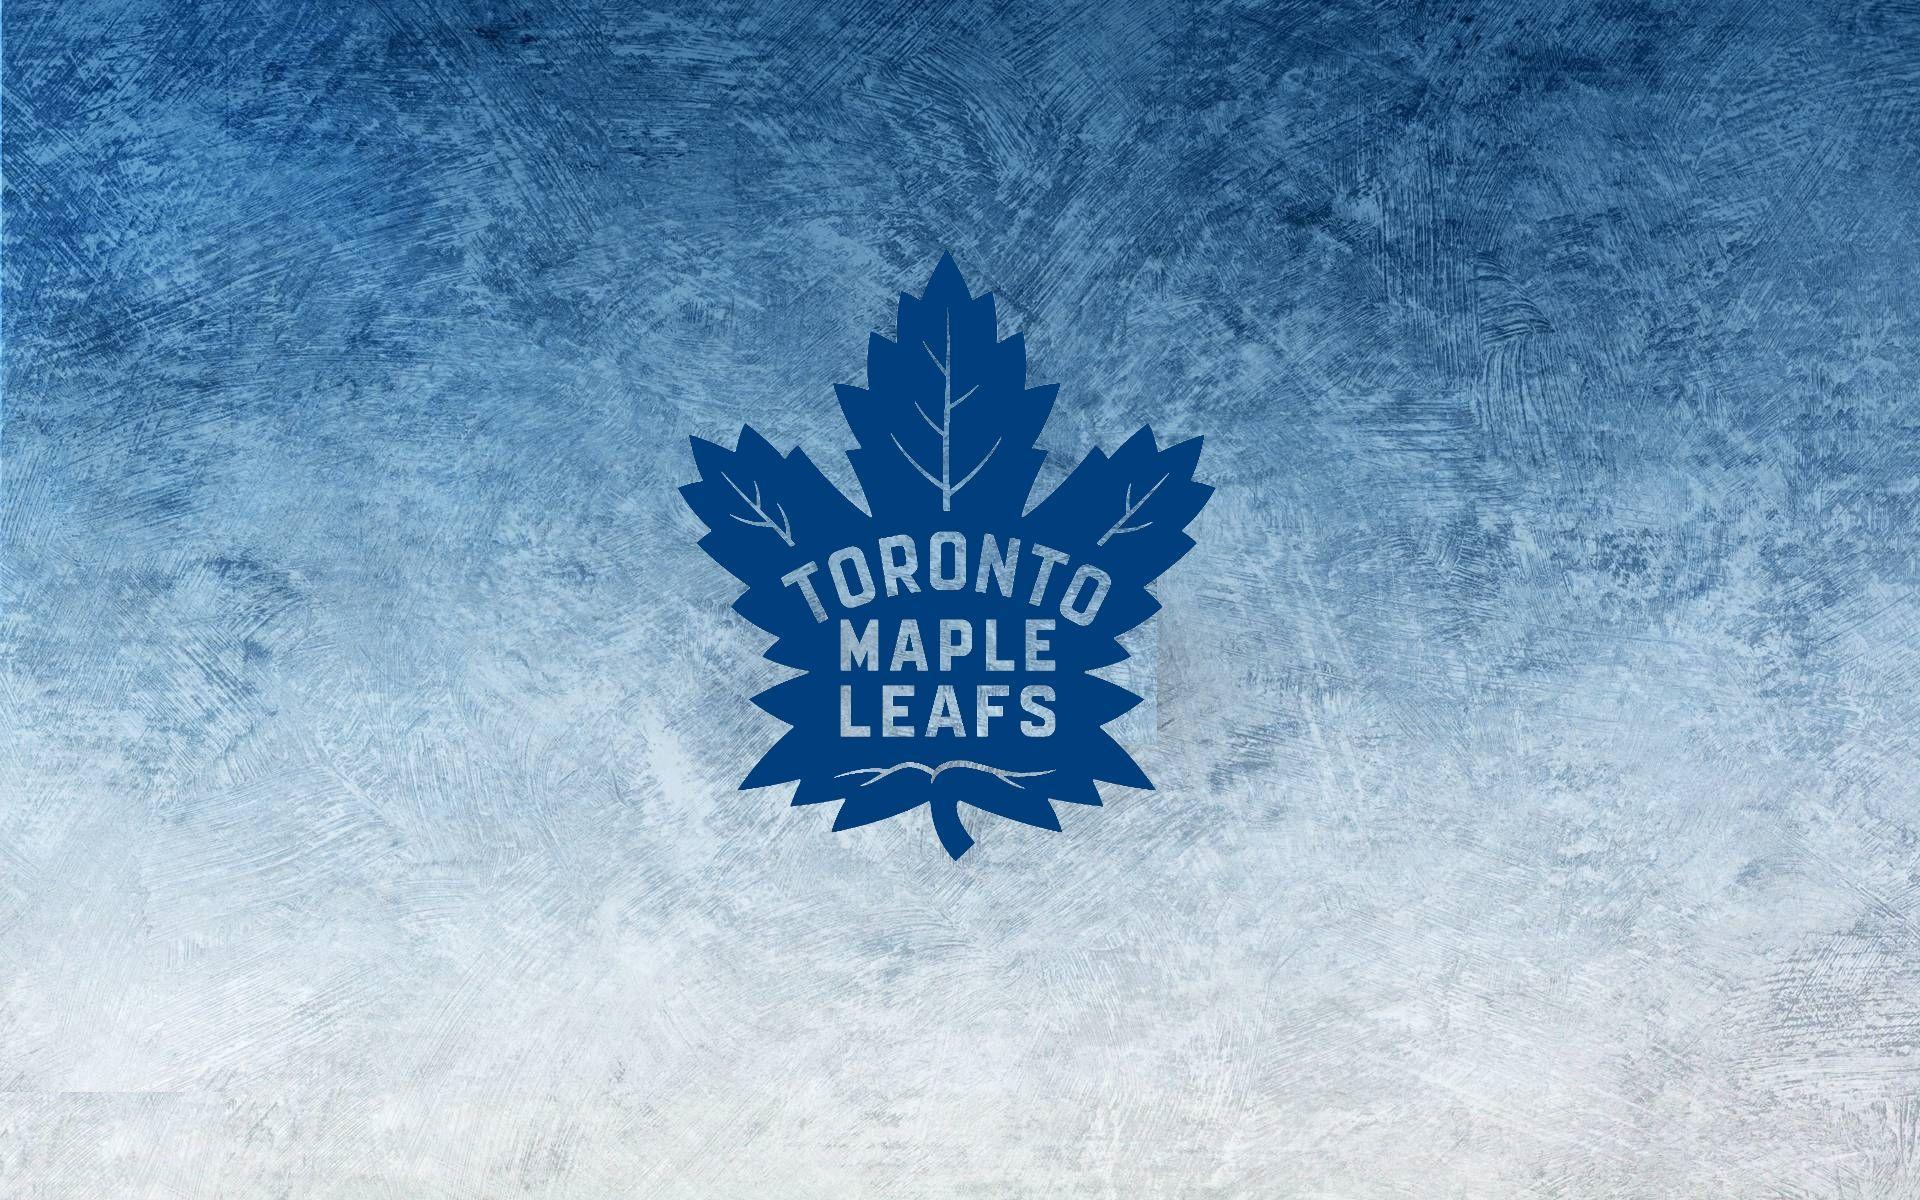 Toronto Maple Leafs logo, logotype. All logos, emblems, brands